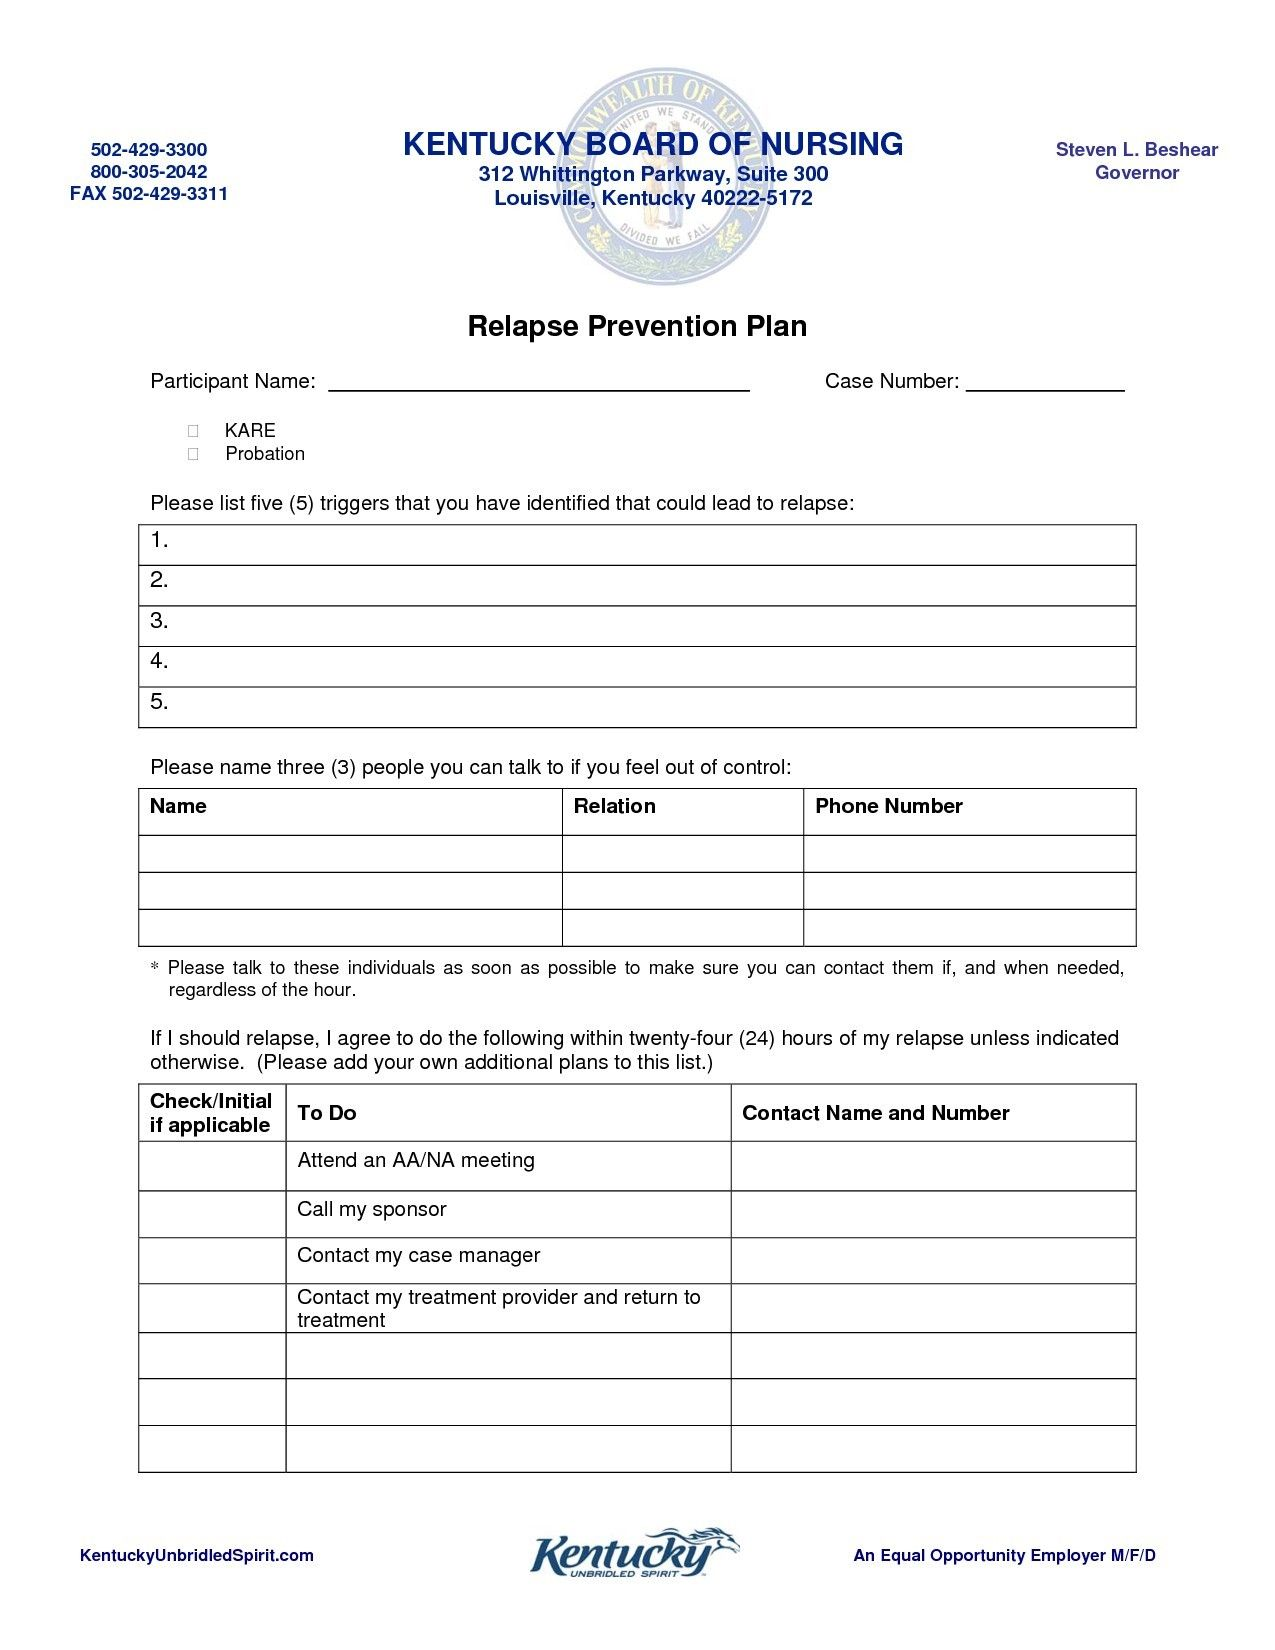 Relapse Prevention Plan Worksheet Template